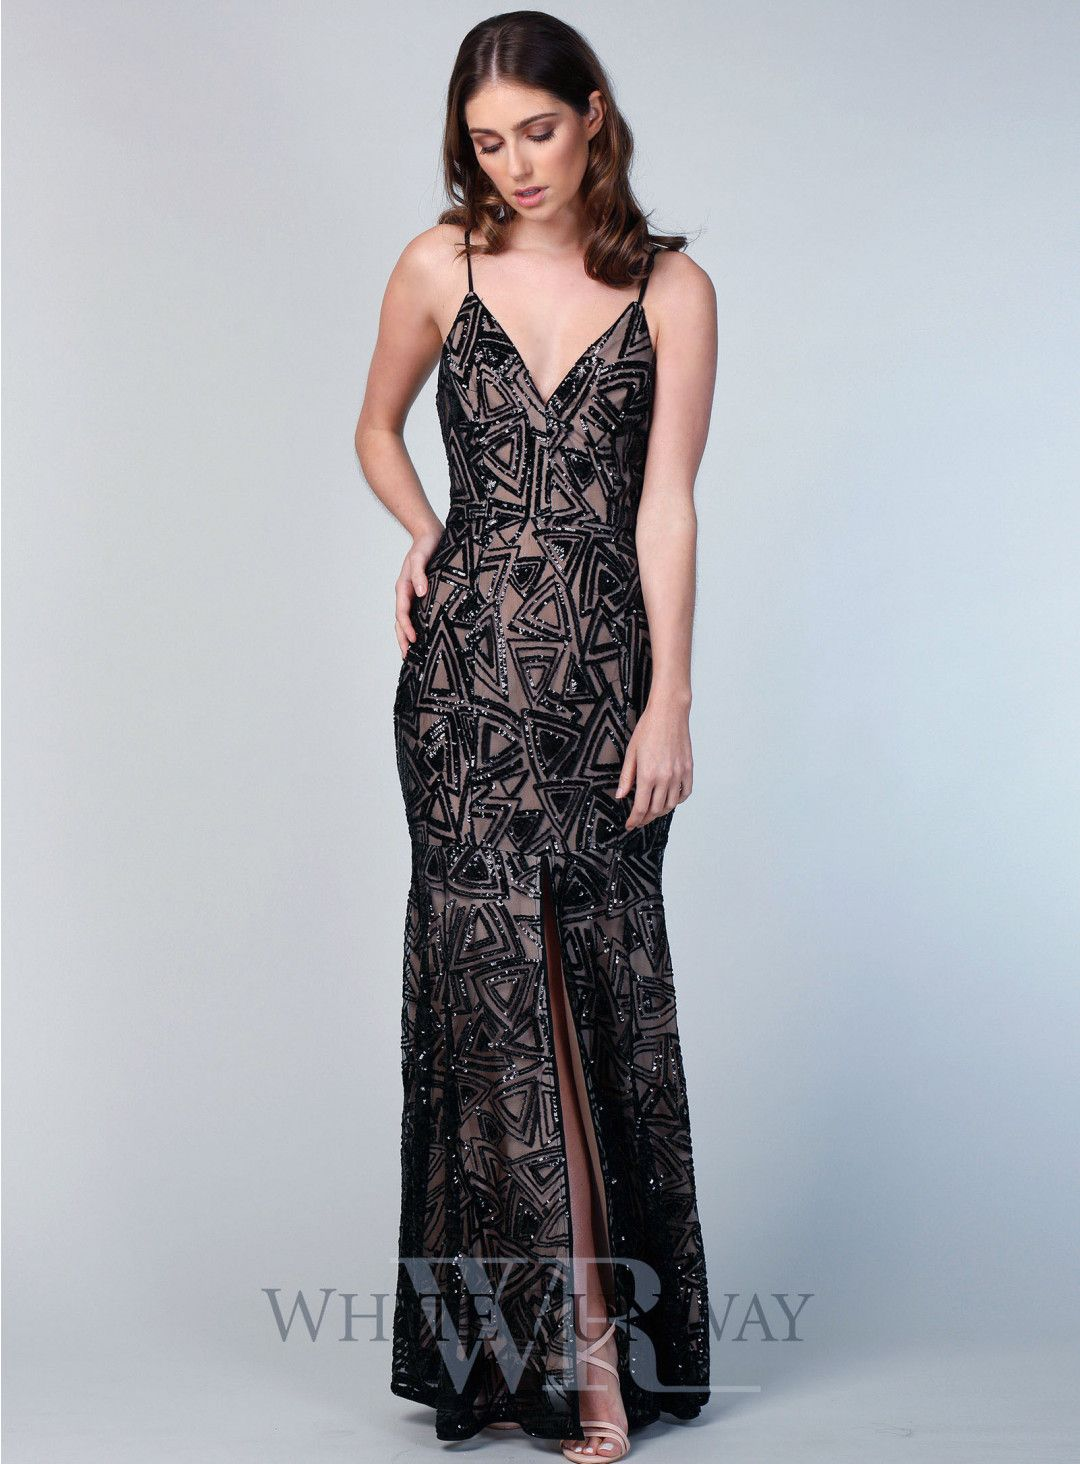 Alyssa sequin maxi a beautiful maxi dress by romance the label a v